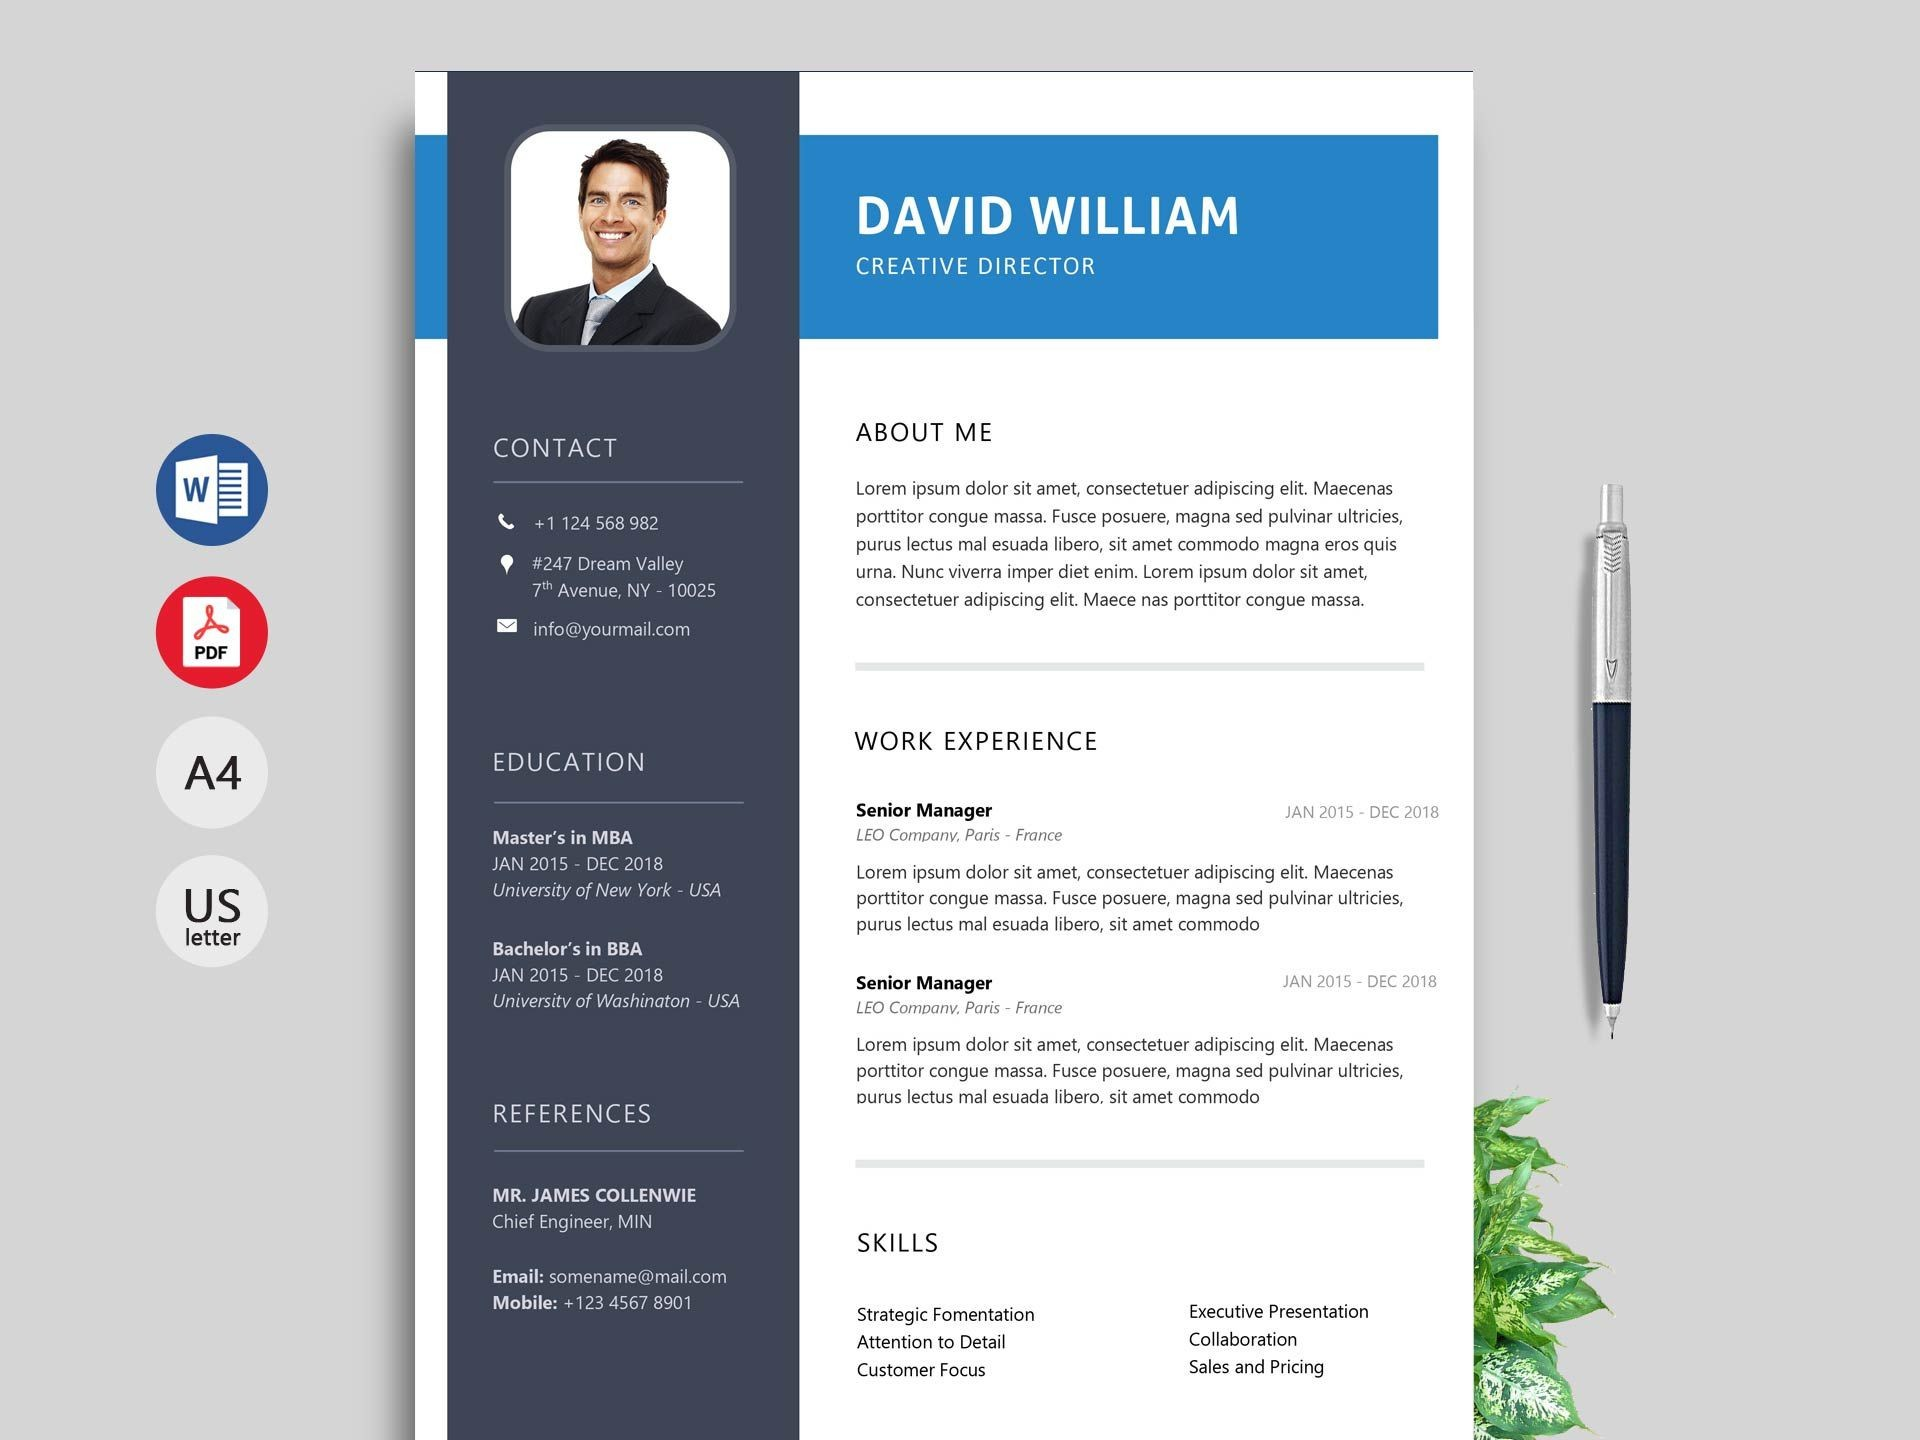 007 Marvelou Download Resume Template Word 2018 Highest Clarity  Free1920